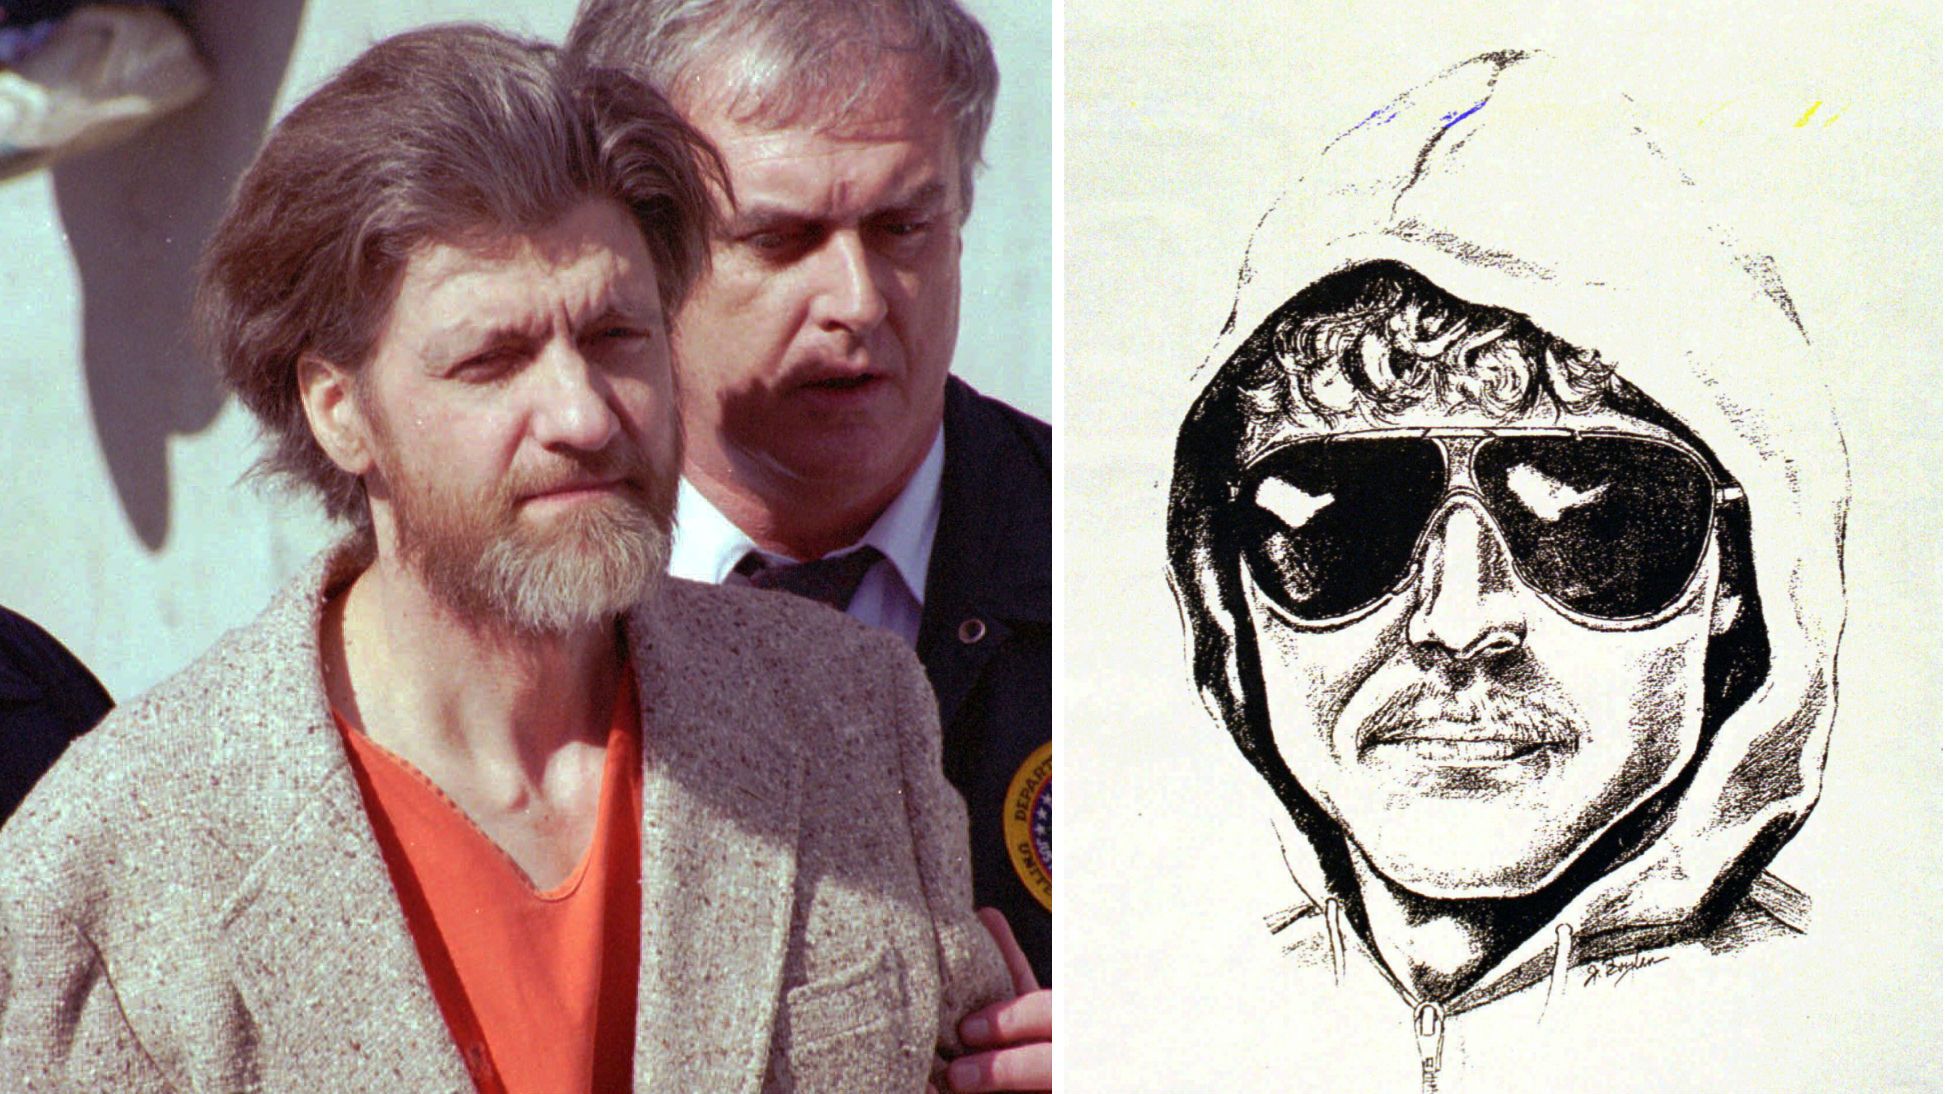 FBI profiler donates files 25 years after Unabomber arrest